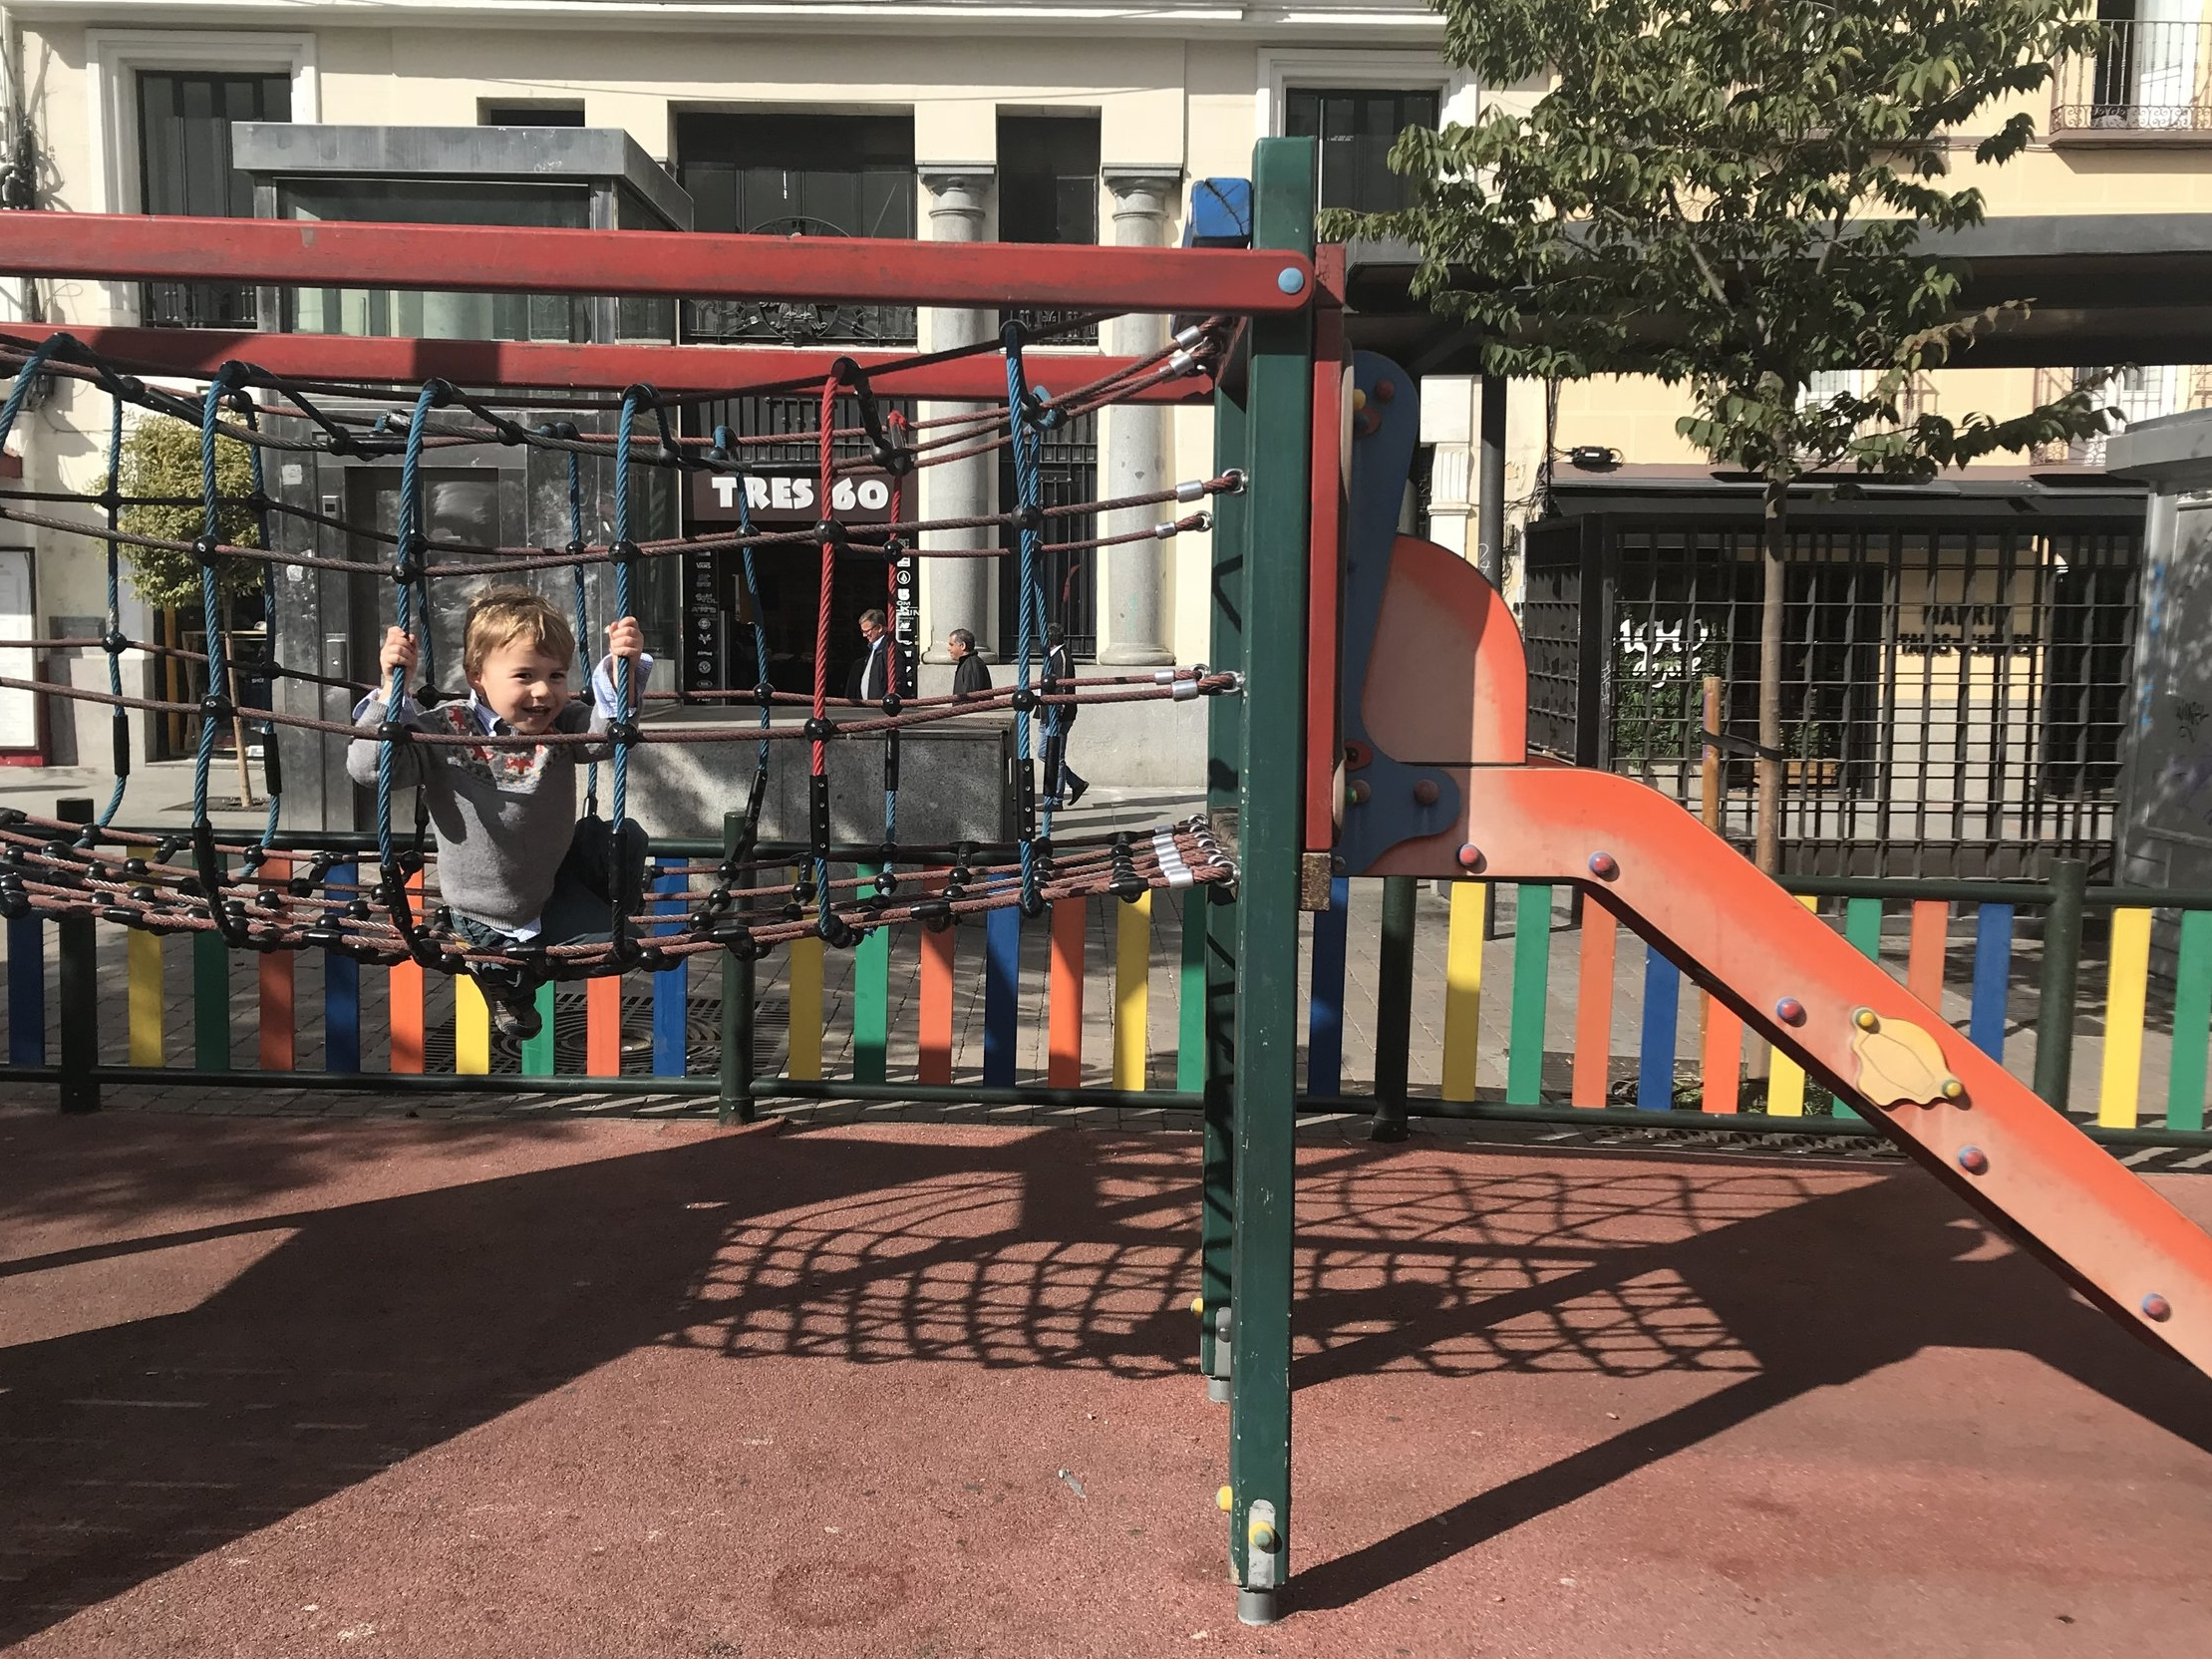 Emergency pit stops:  Thanks to tips from the  Mom and Baby Madrid  Facebook group, I was able to map out parks and kid-friendly finds close to our Airbnb in Central Madrid. The playgrounds were far from fancy—and some would have required a Covenant Not To Sue in the U.S.—but they did the trick.